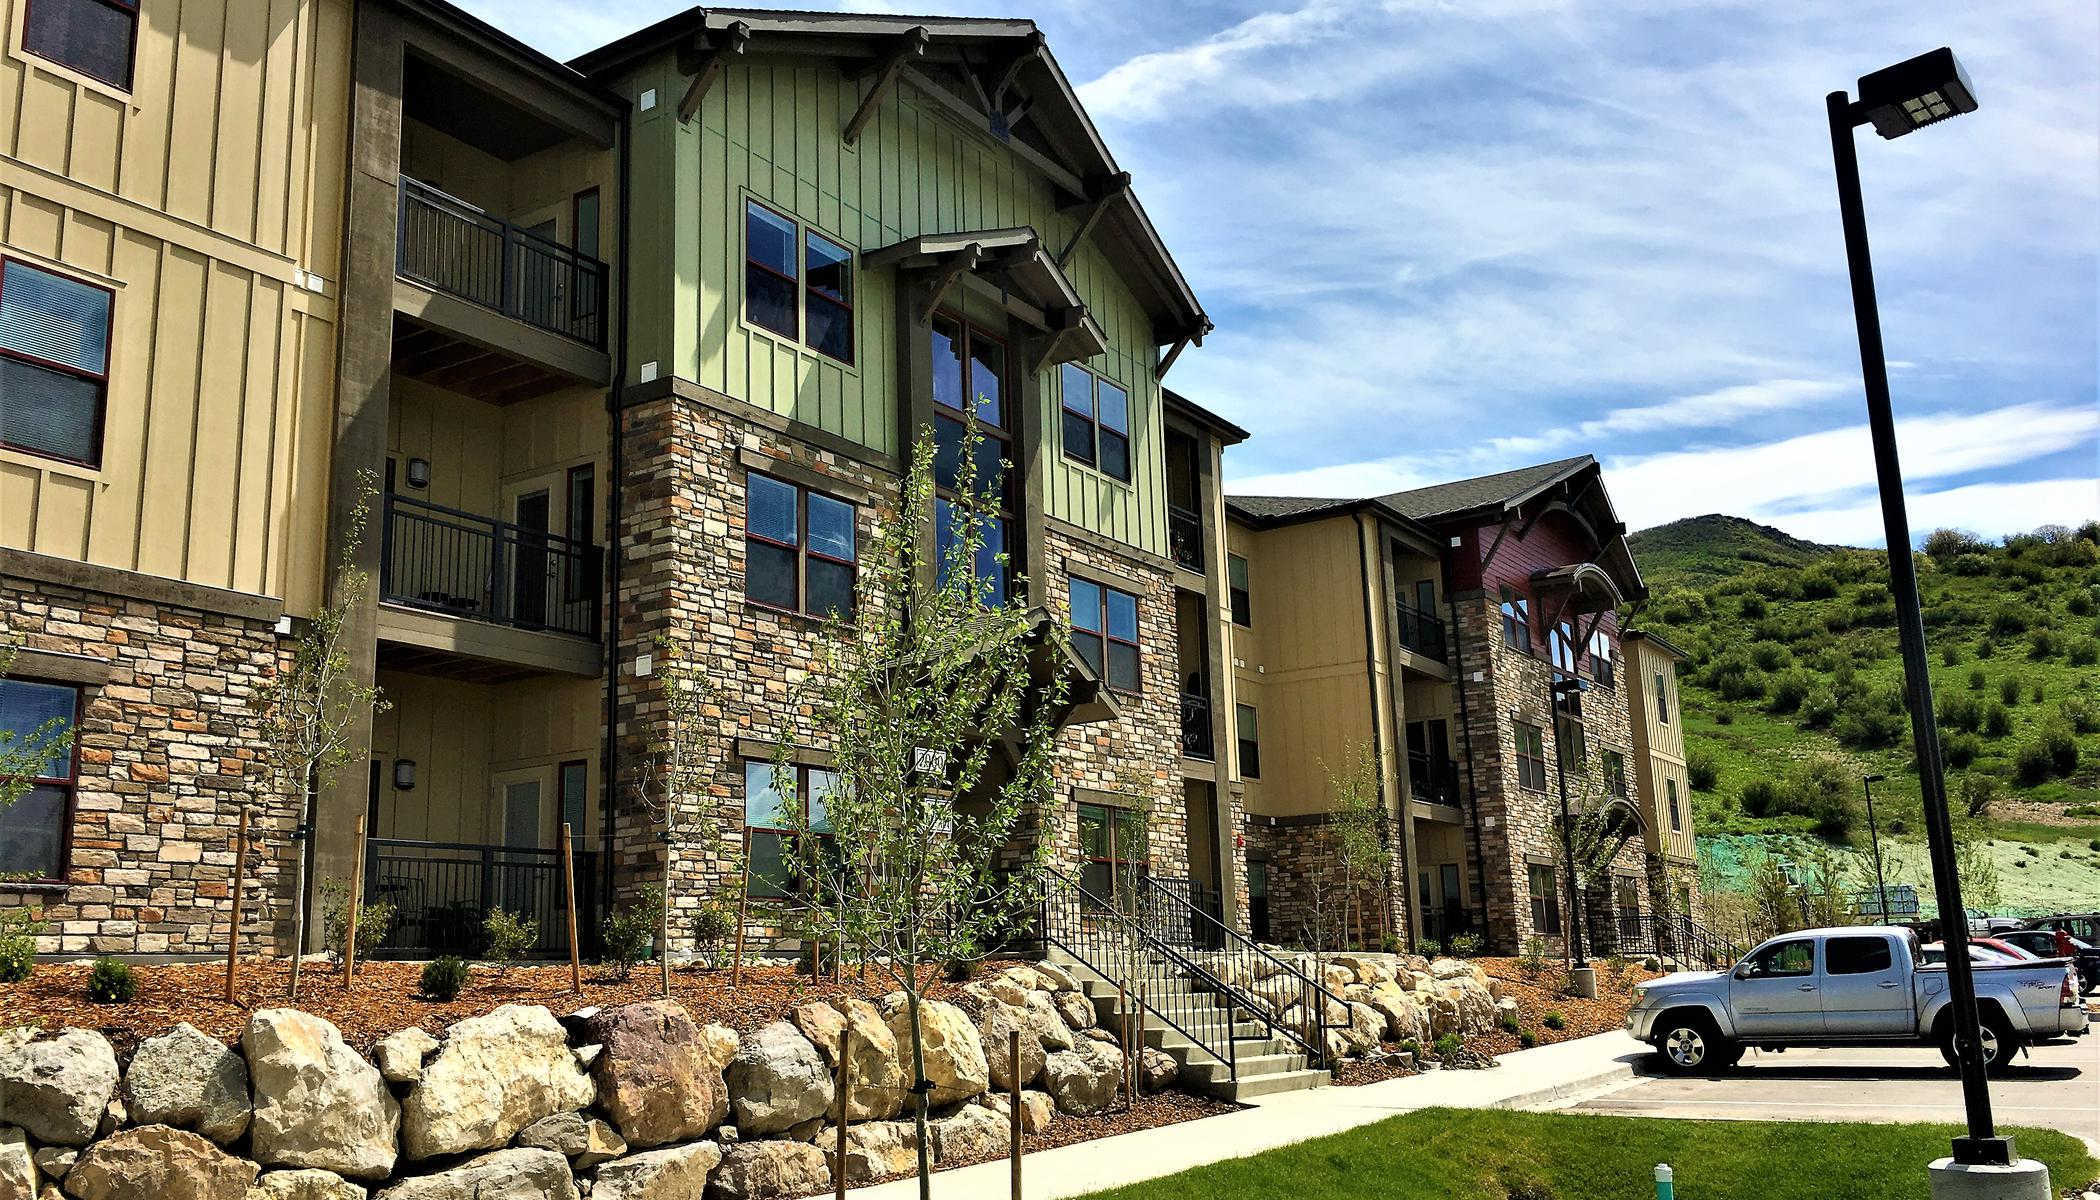 Apartments with parking lot at The Reserves at Steamboat Springs in Steamboat Springs, CO